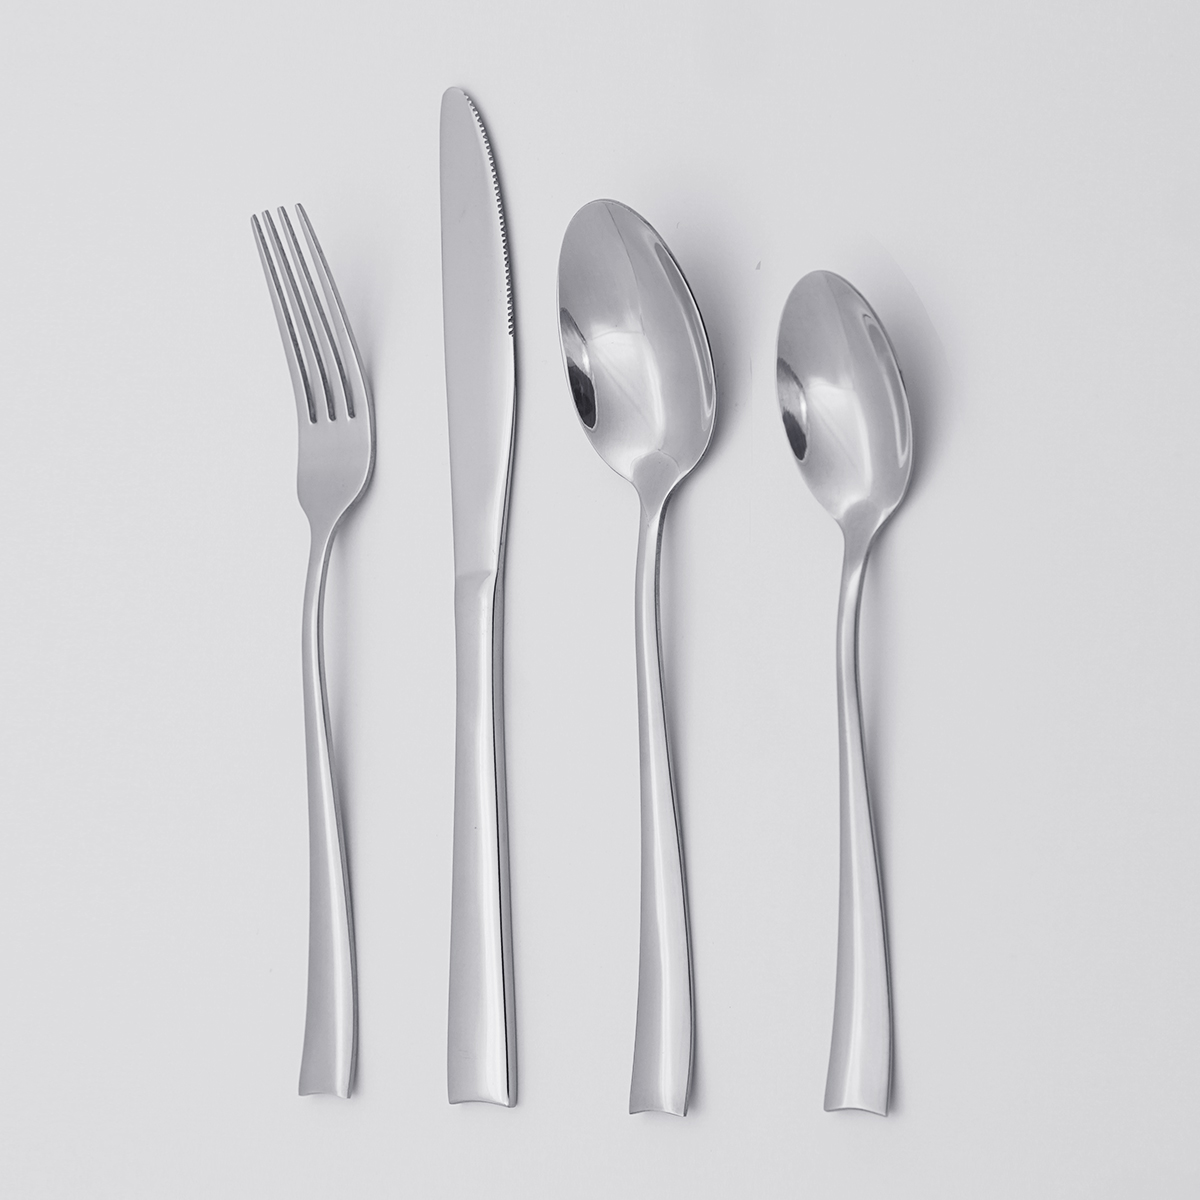 Hot Sell Creative 304 Stainless Steel Silverware Flatware Cutlery Sets for Restaurant